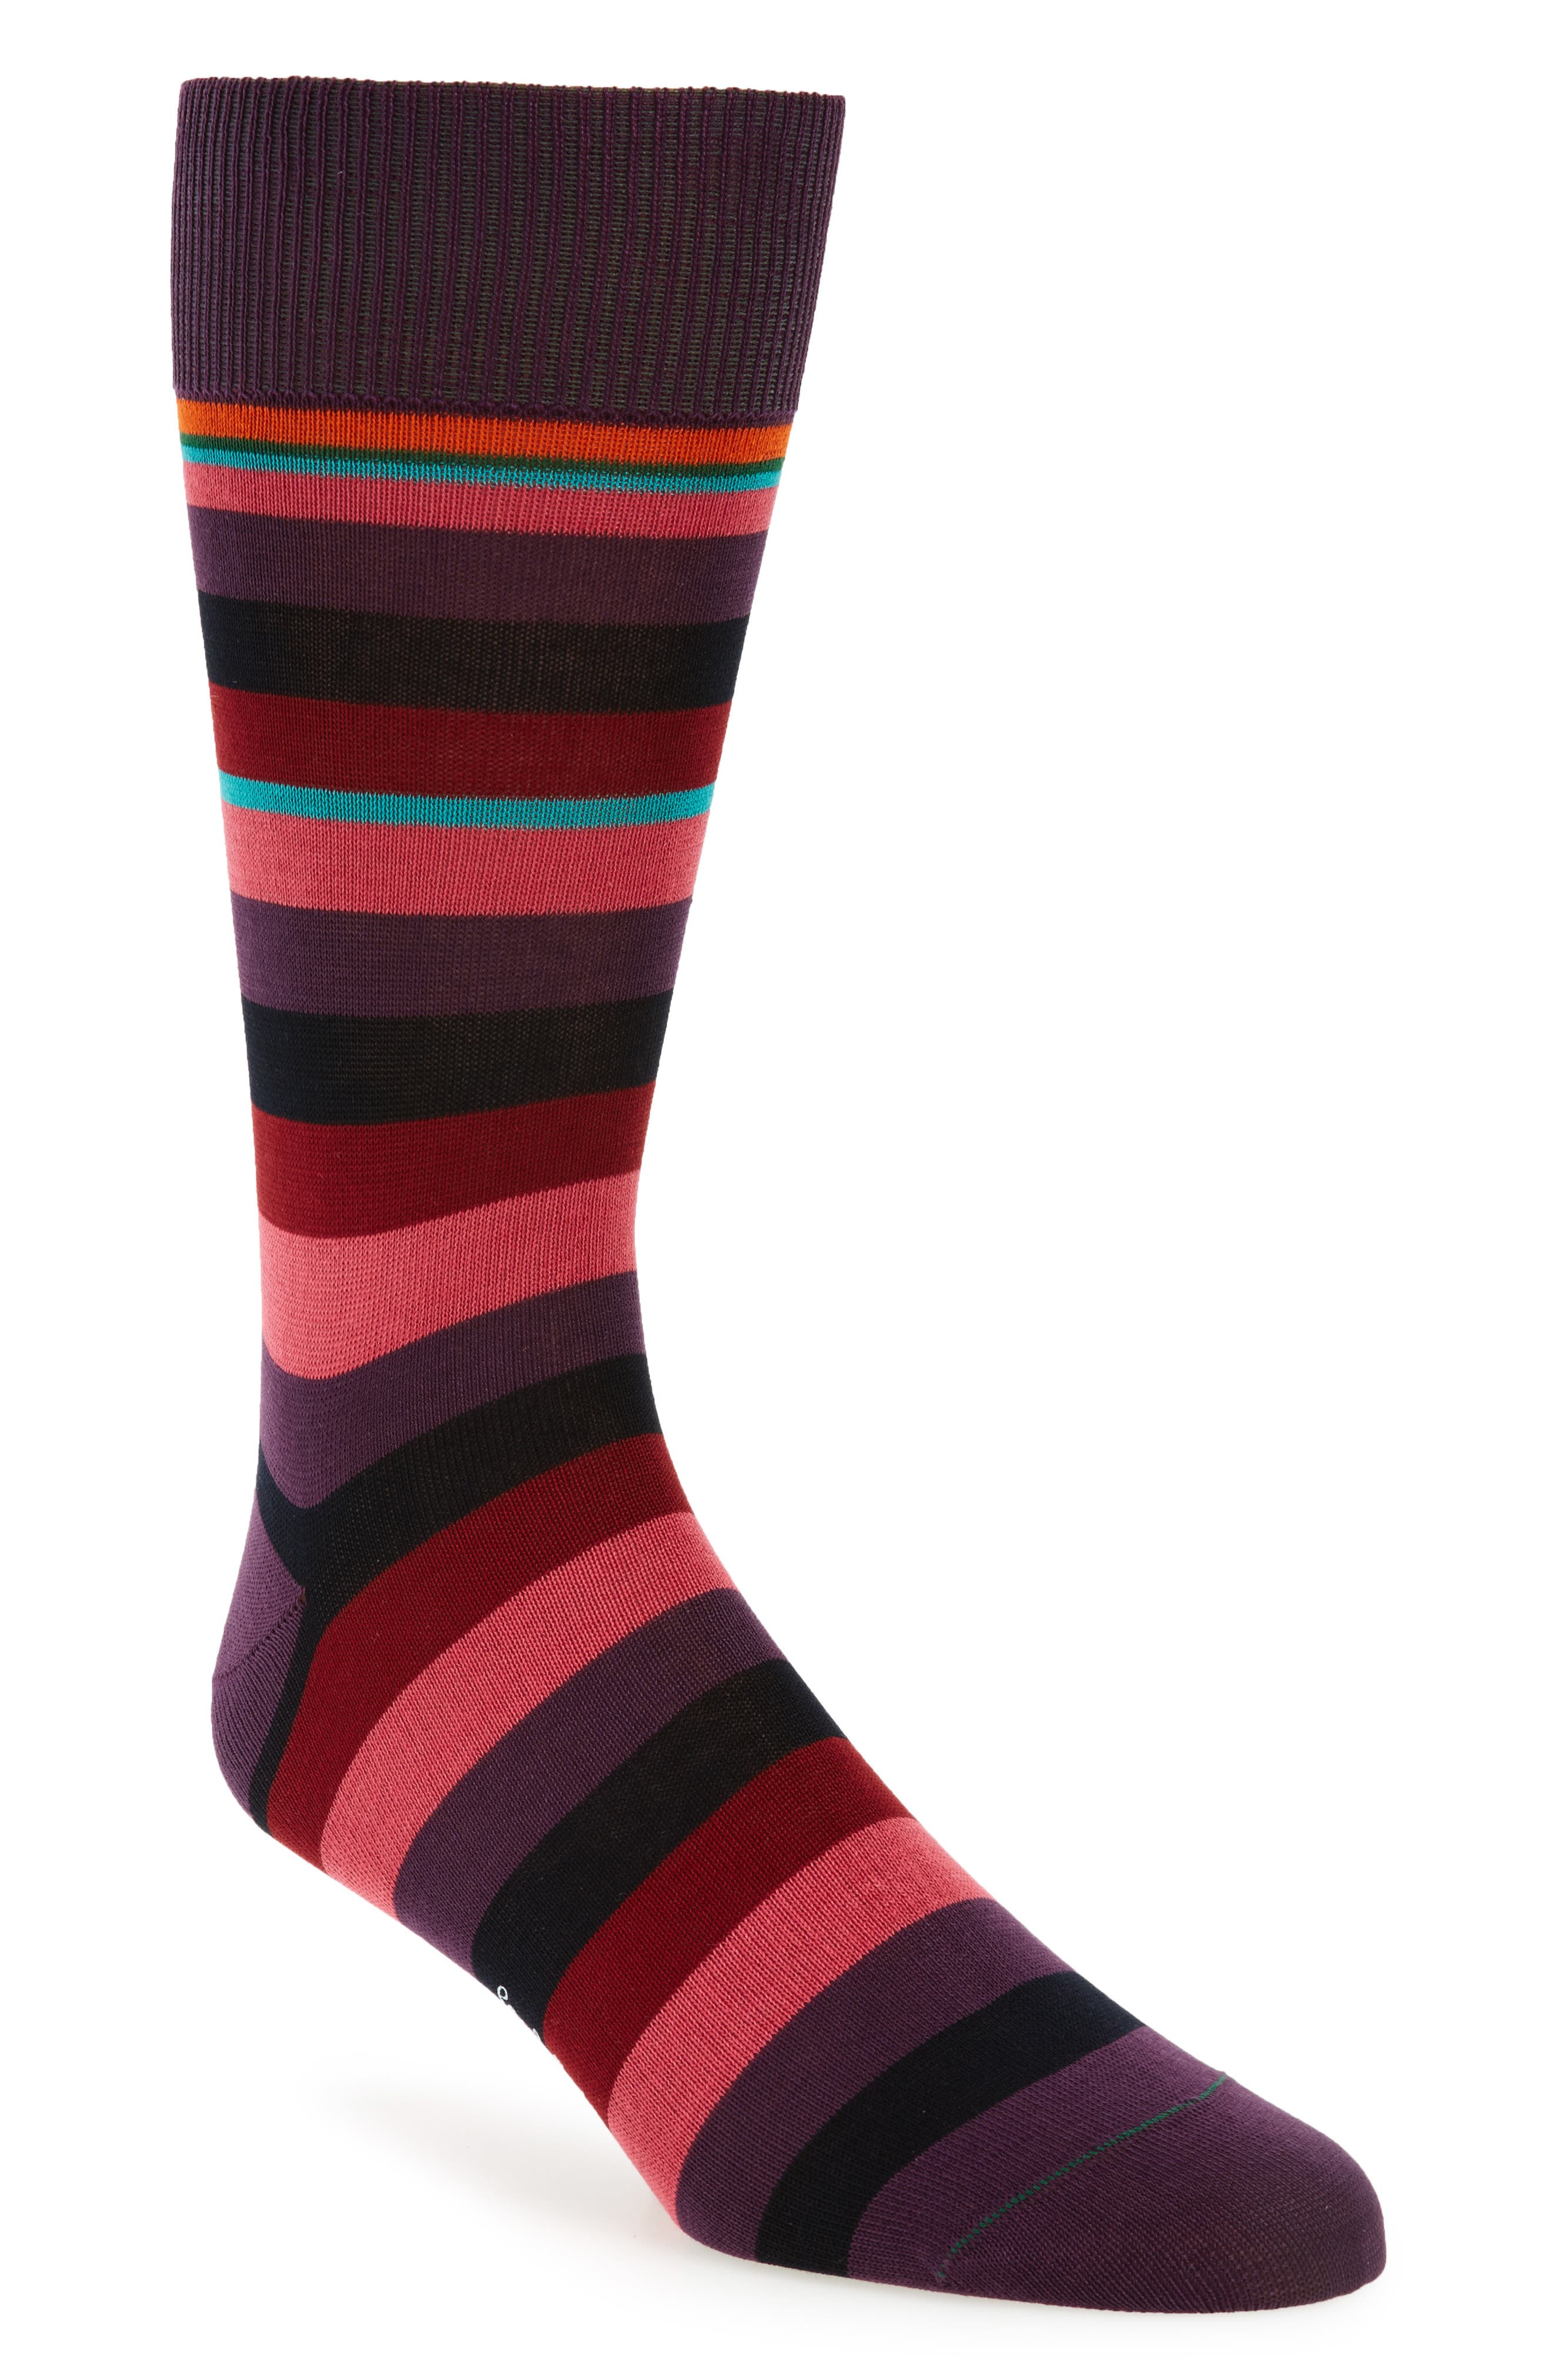 Paul Smith Valentine Told Me Stripe Socks